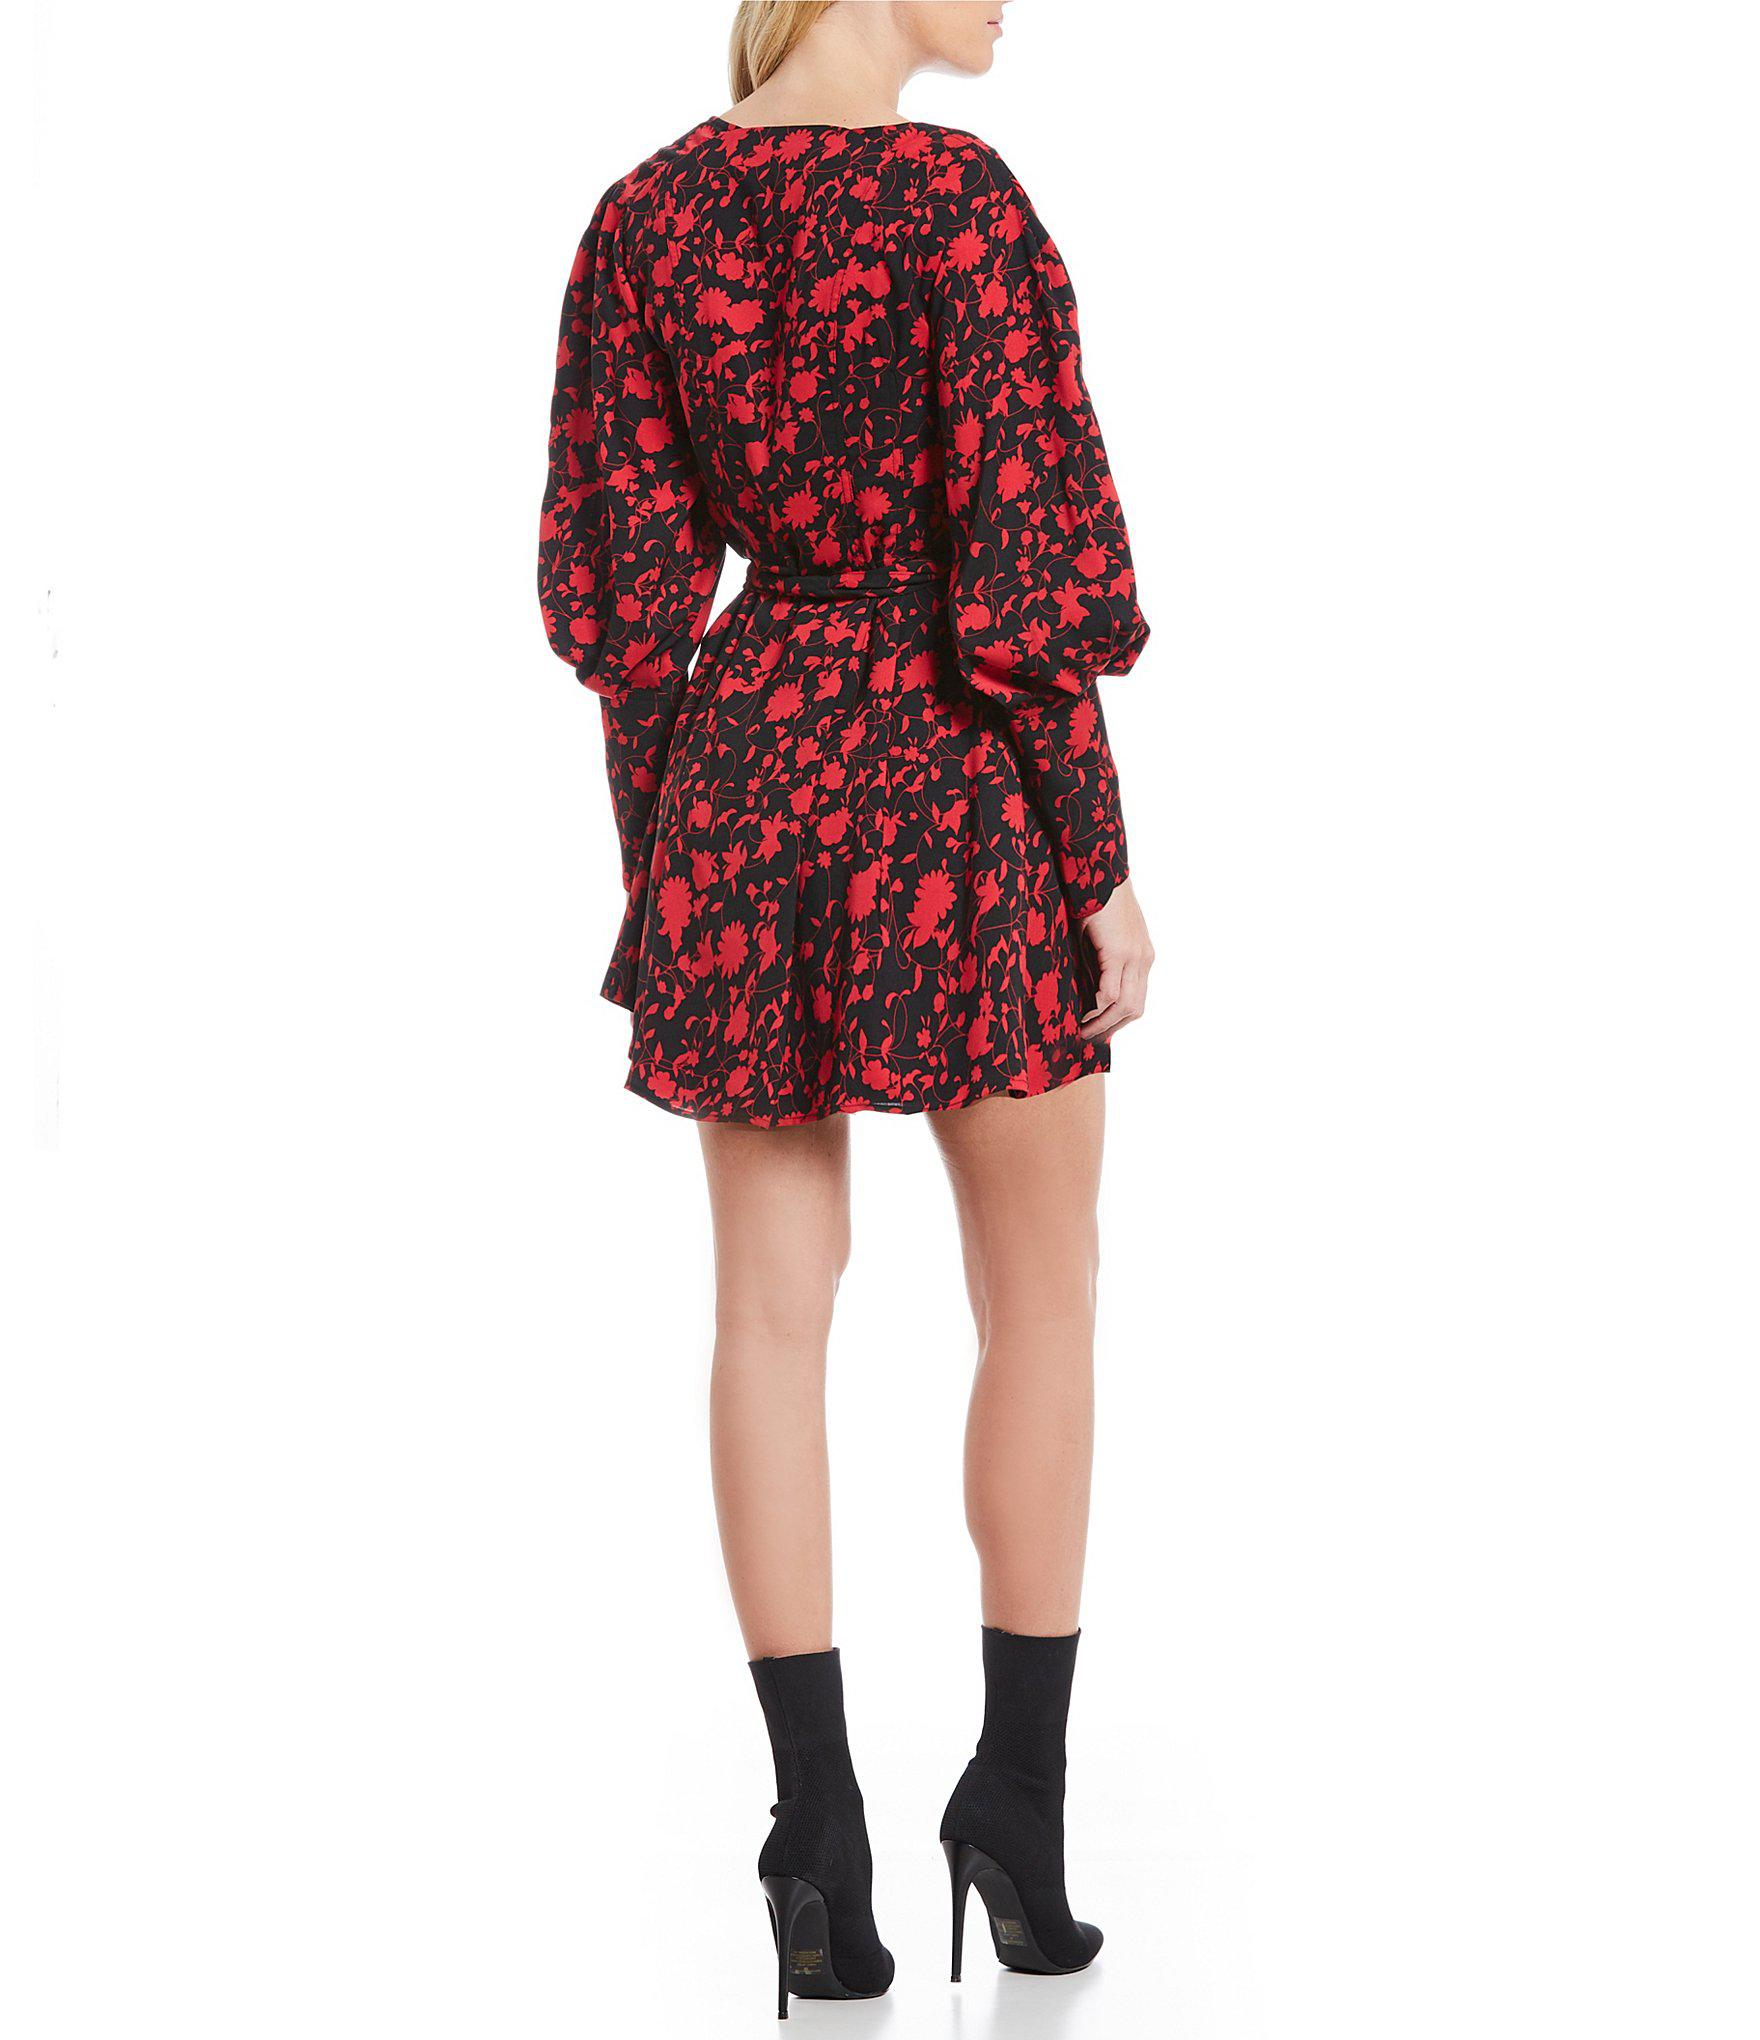 6b53ff8e5df78 Lyst - C meo Collective Opacity Floral Print Bishop Sleeve Belted V-neck  Mini Dress in Red